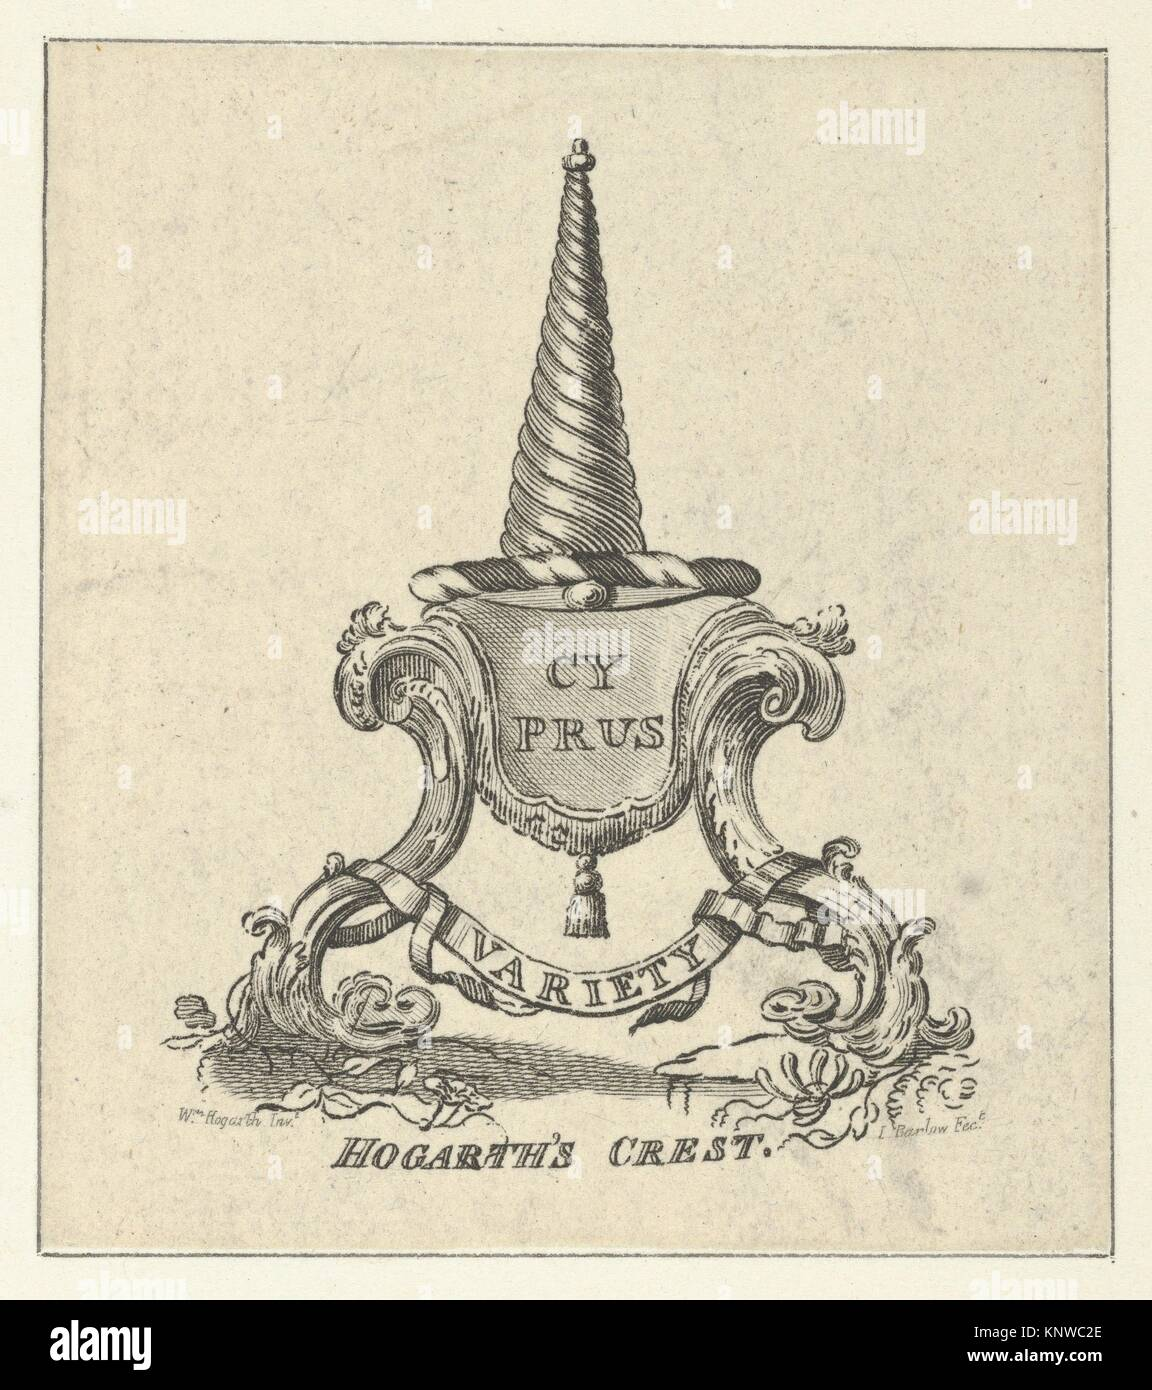 Hogarth's Crest. Engraver: Engraved by Inigo Barlow (British, active ca. 1790); Artist: Said to be designed - Stock Image